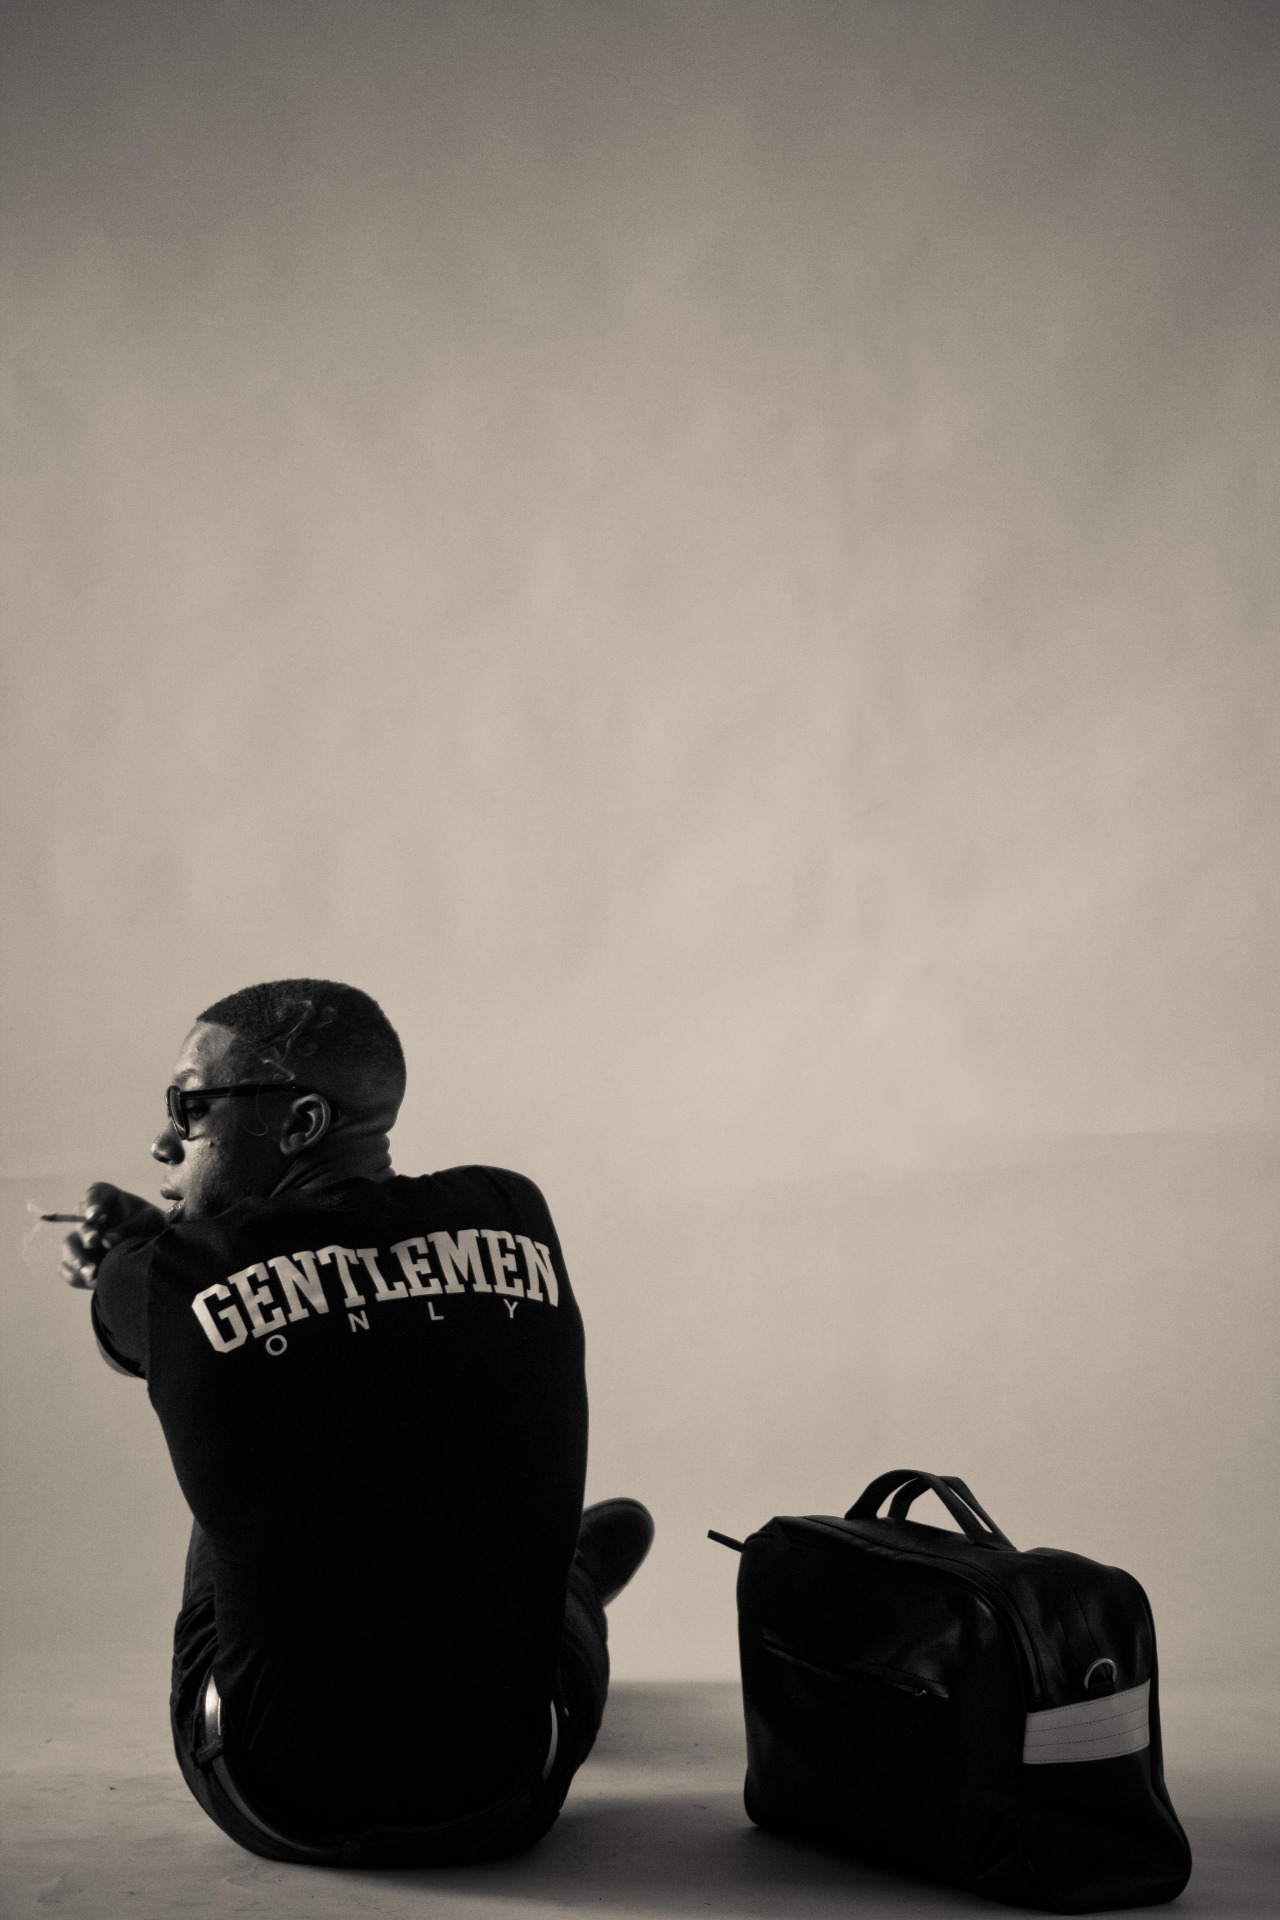 blackfashion:  The Gentlemen's Table www.gentlemenstable.tumblr.com www.gentlemenstable.com